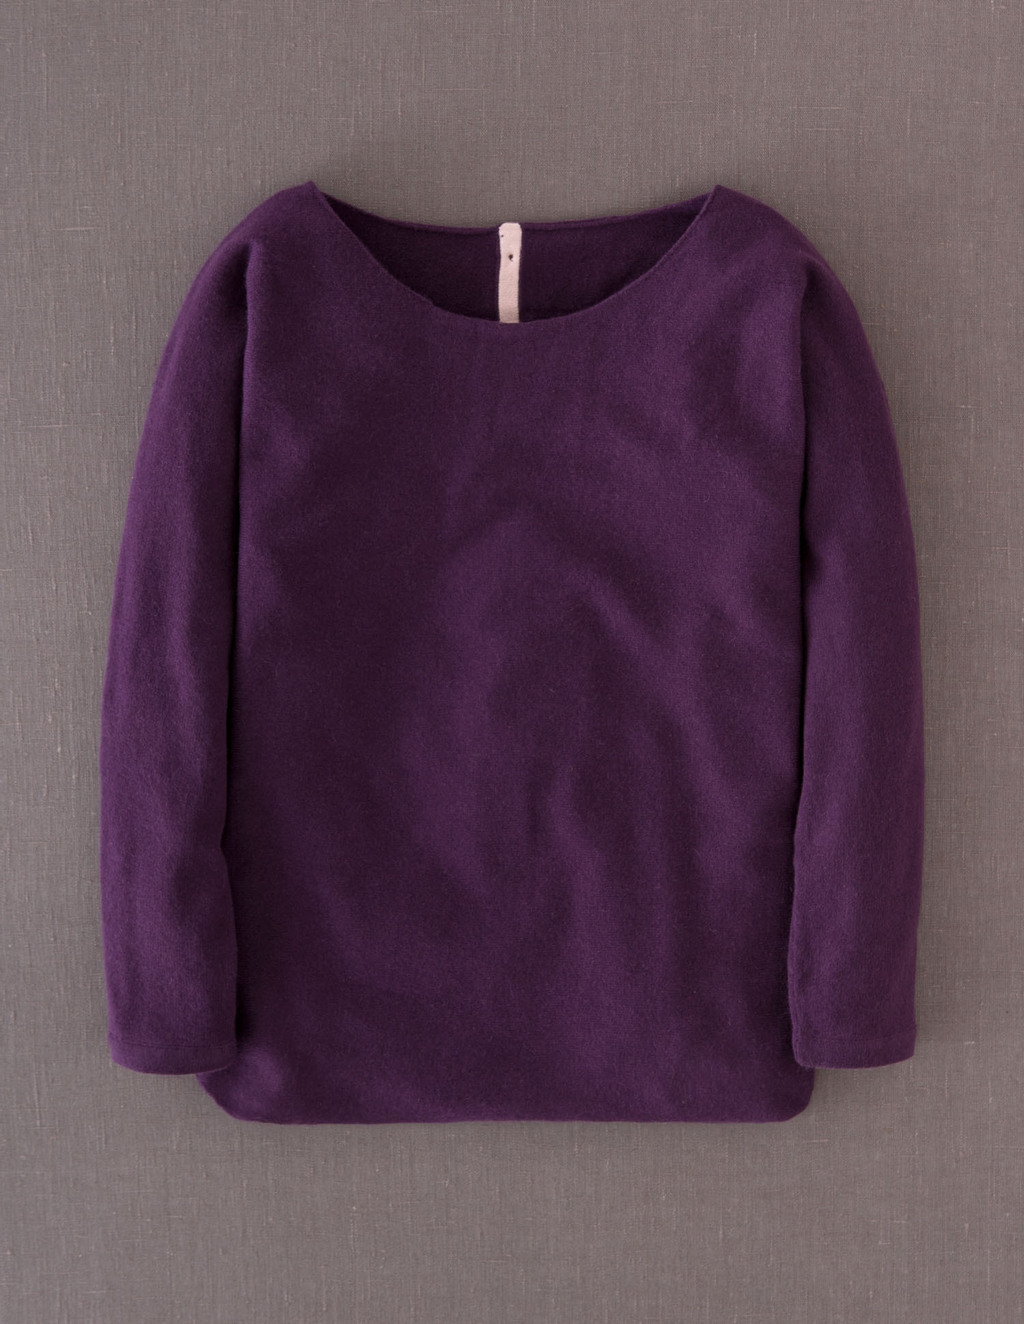 Cashmere Button Back Jumper - neckline: round neck; pattern: plain; style: standard; predominant colour: aubergine; occasions: casual; length: standard; fit: standard fit; fibres: cashmere - 100%; sleeve length: long sleeve; sleeve style: standard; texture group: knits/crochet; pattern type: knitted - fine stitch; pattern size: standard; season: a/w 2013